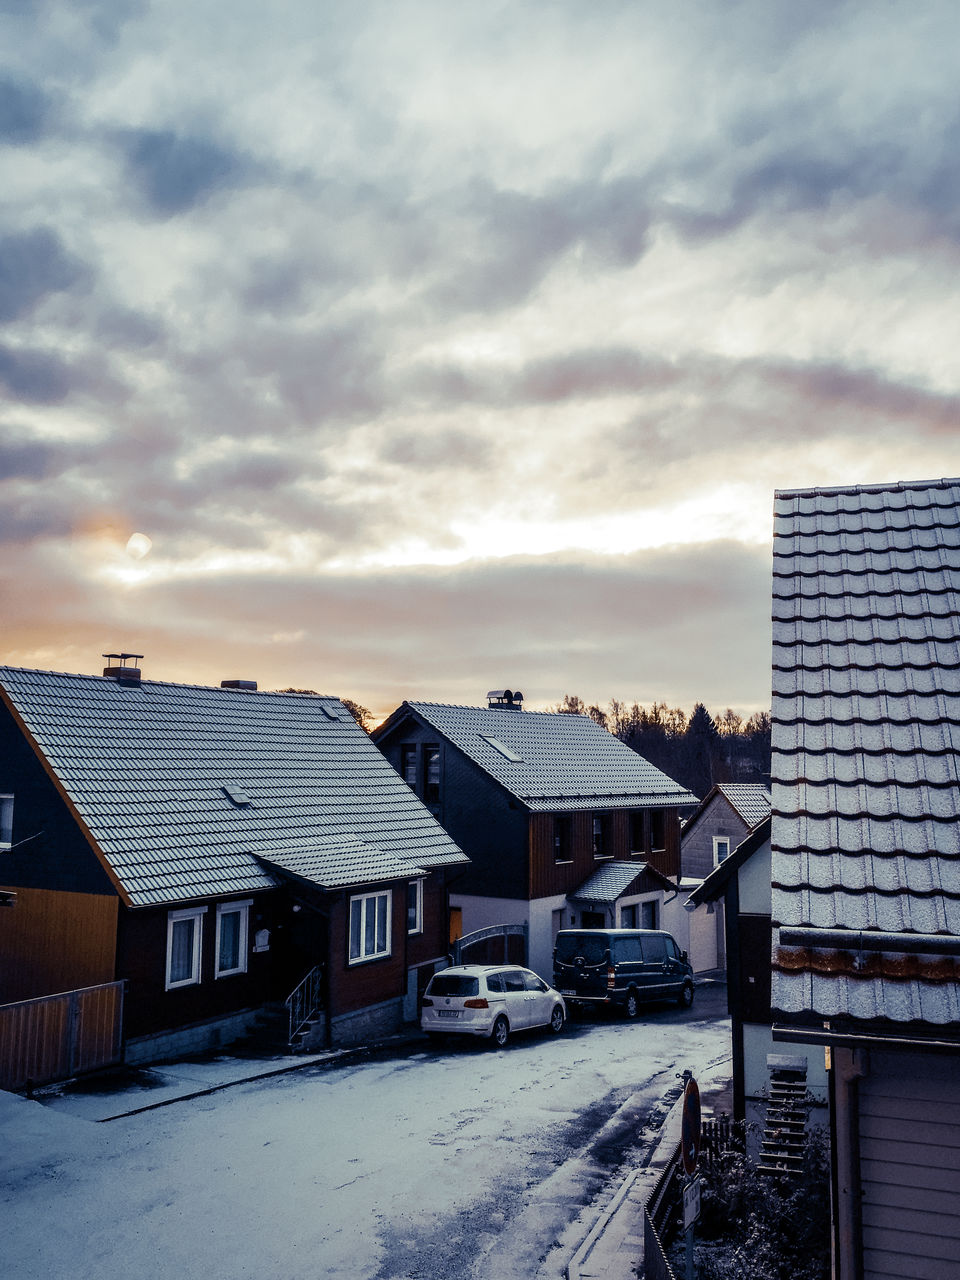 architecture, built structure, building exterior, cloud - sky, building, sky, city, residential district, roof, house, nature, winter, no people, snow, cold temperature, outdoors, day, office building exterior, sunset, skyscraper